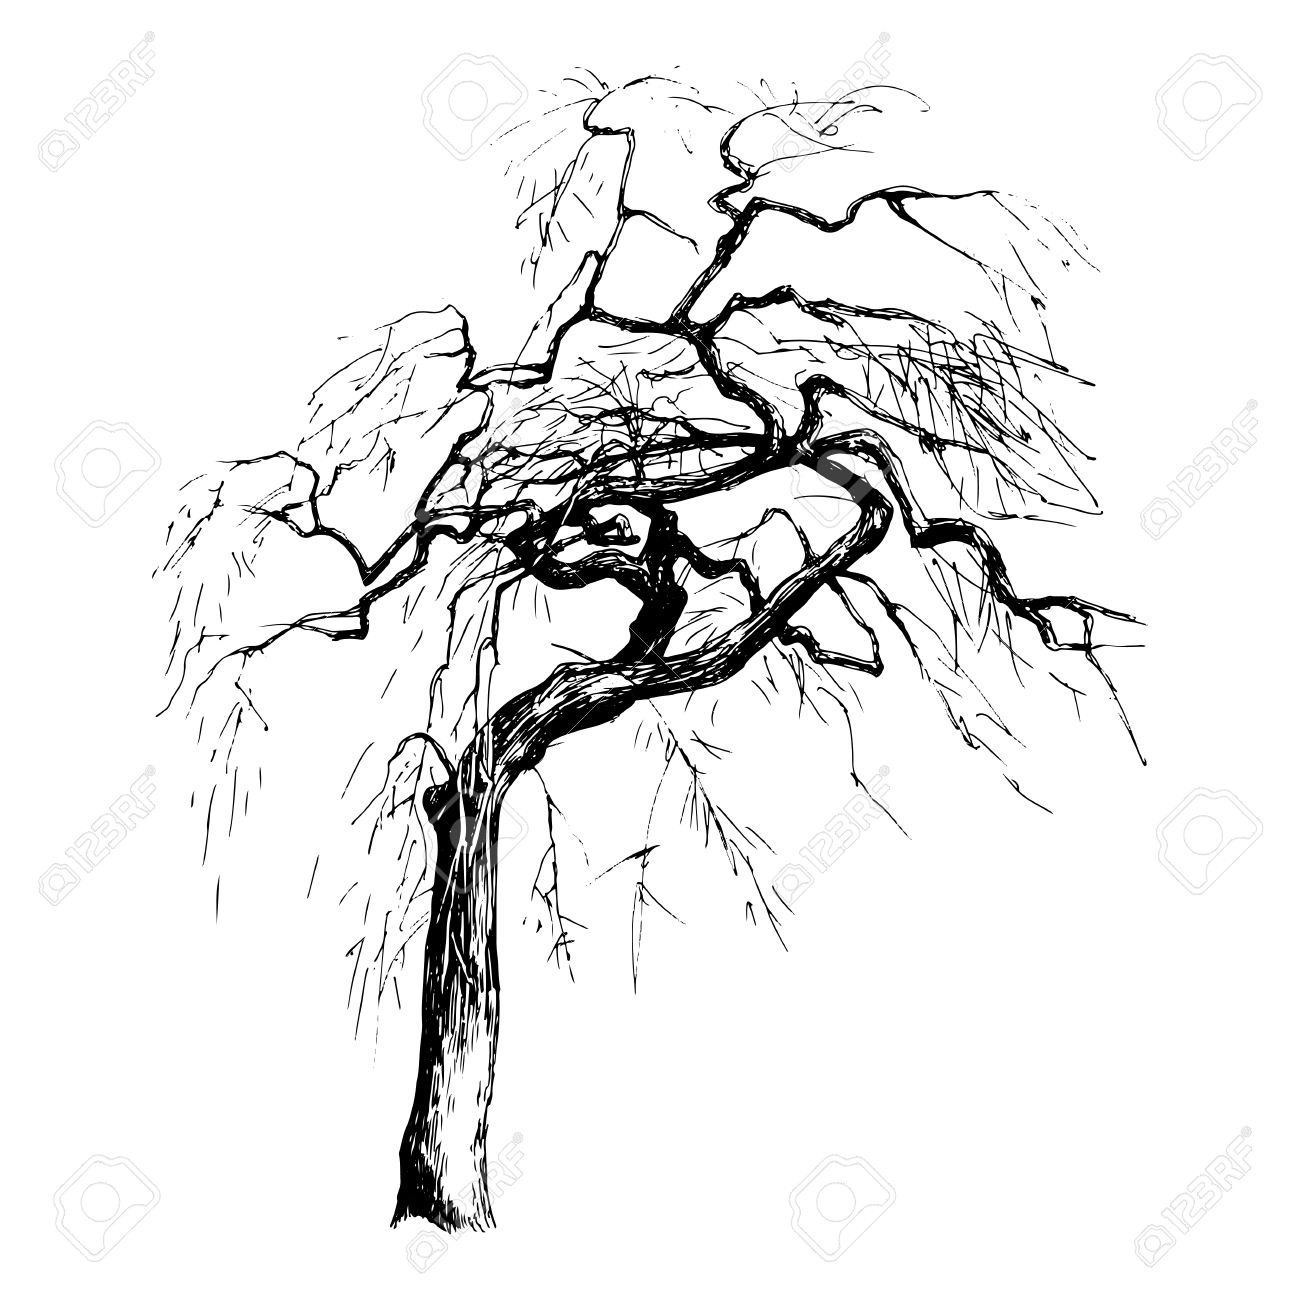 Hand drawn tree silhouette on white background - 58842940